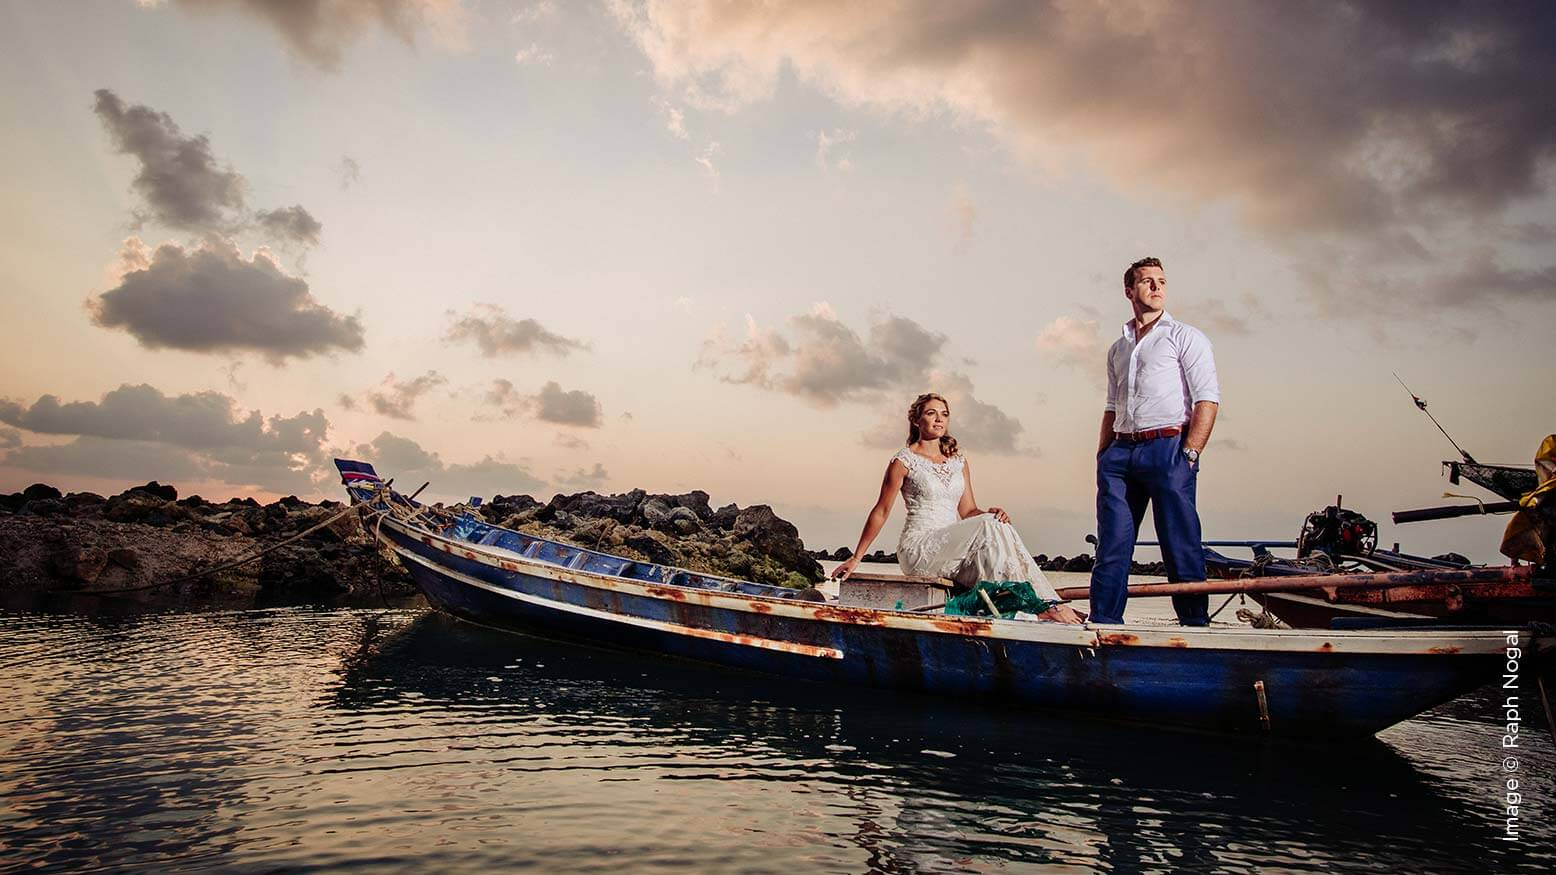 Travel Tips for Photographing Destination Weddings